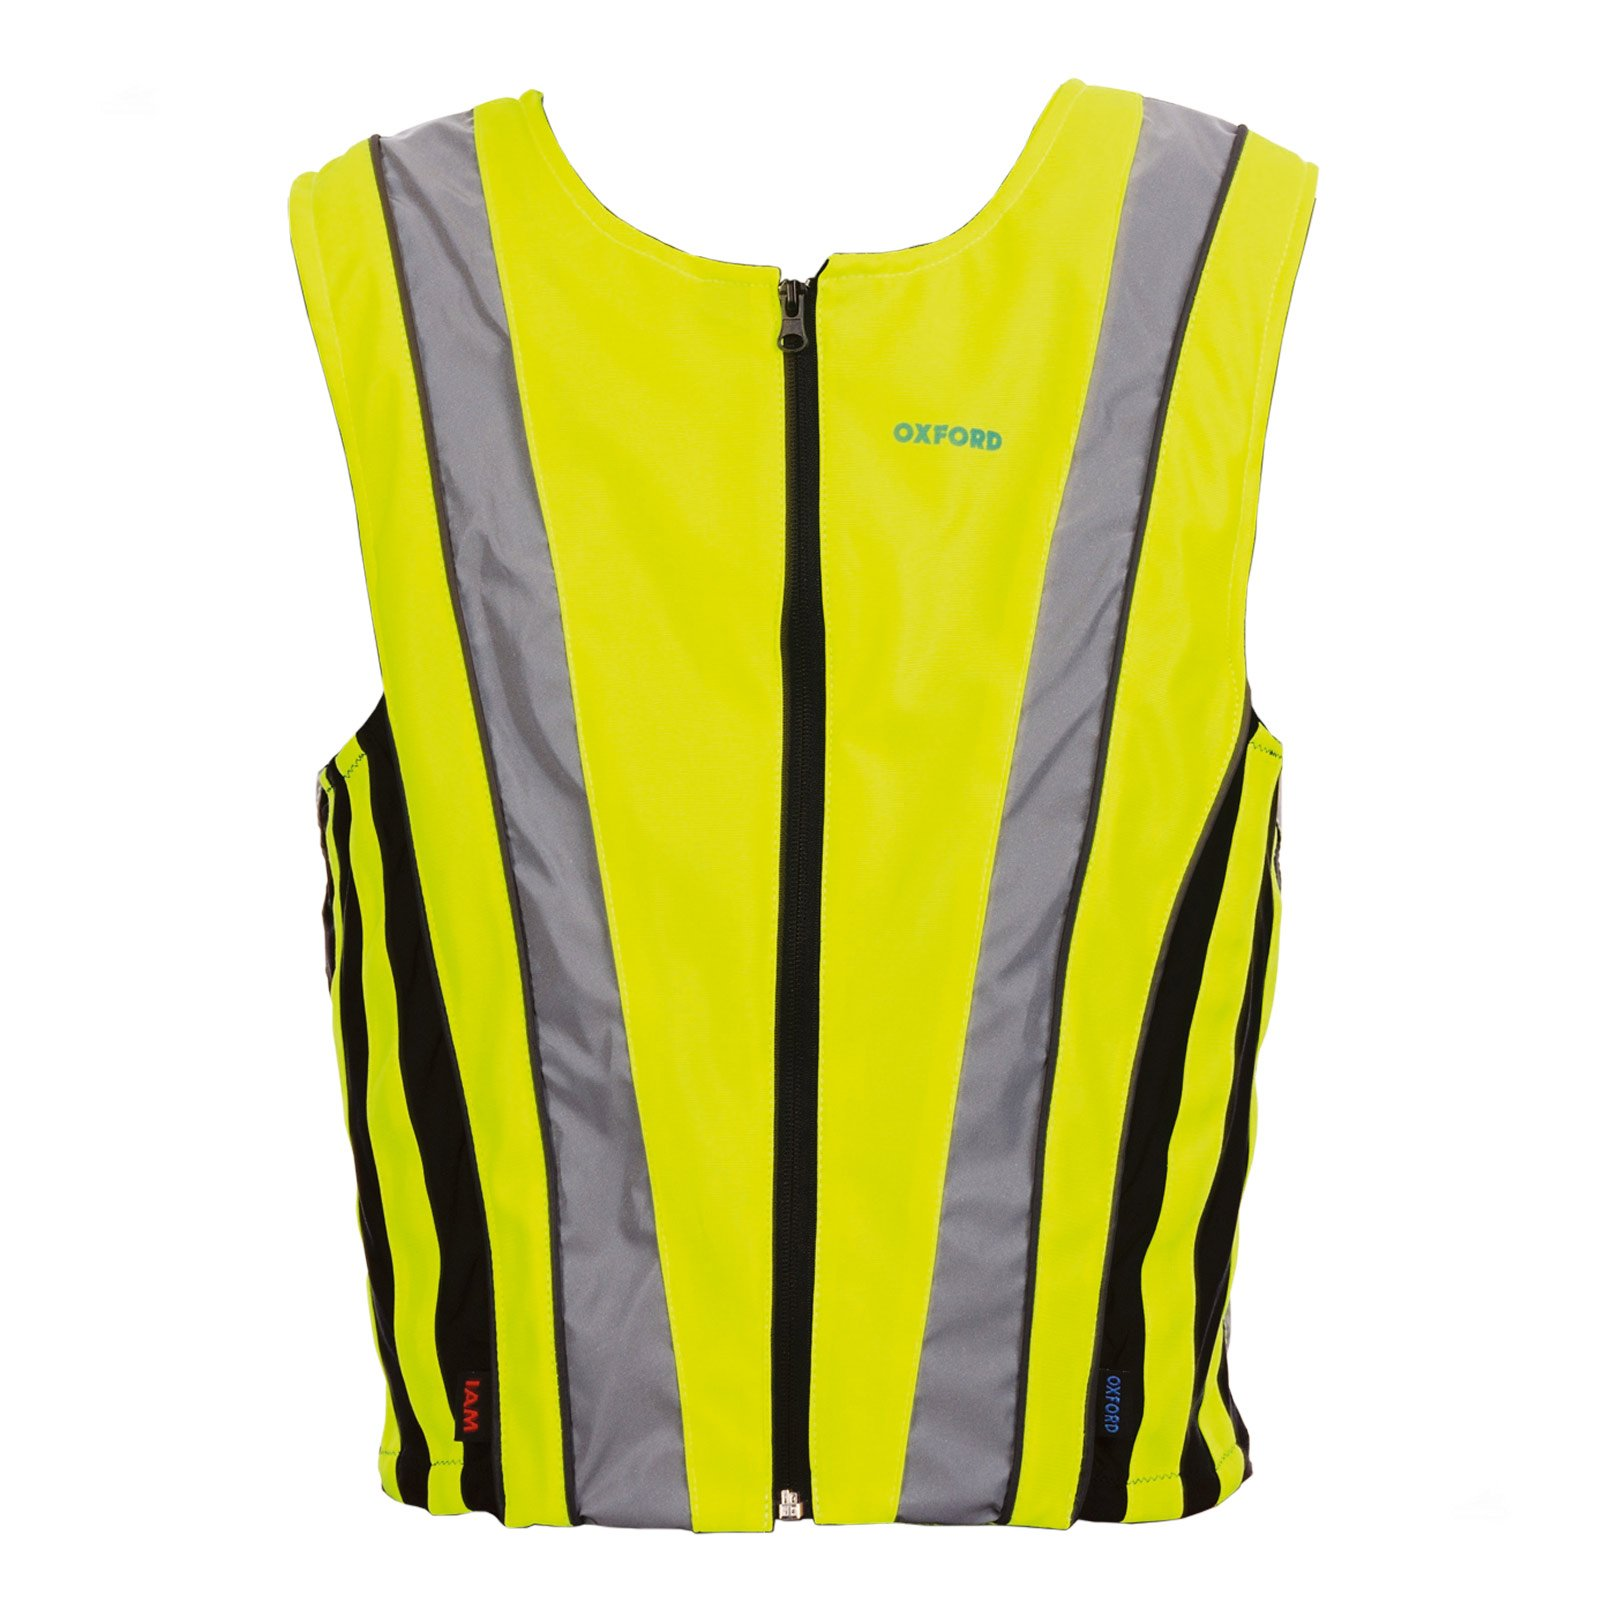 Oxford Bright Top Active Vest Size 4XL 59in - 62in [OF4054]